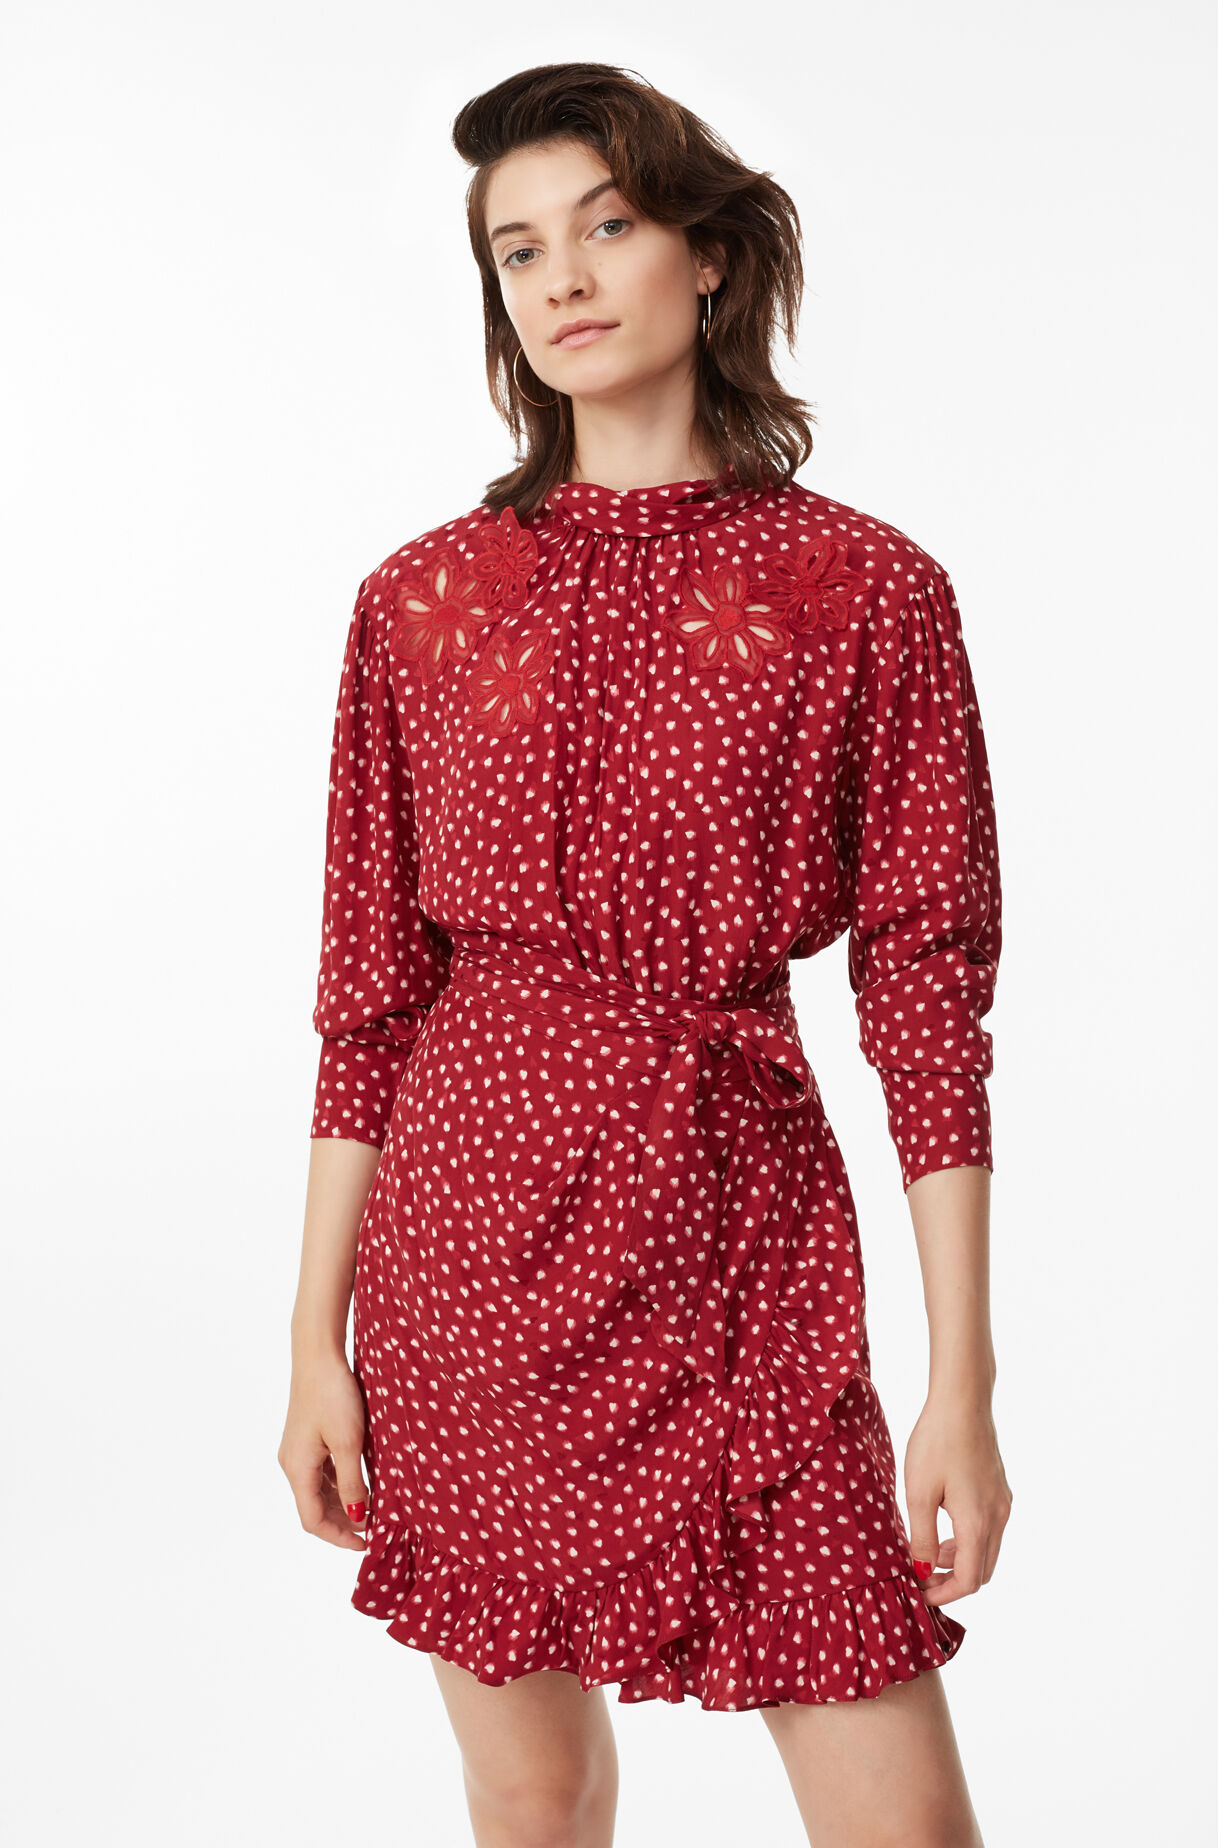 Blurry Heart Silk Embroidered Dress, , large